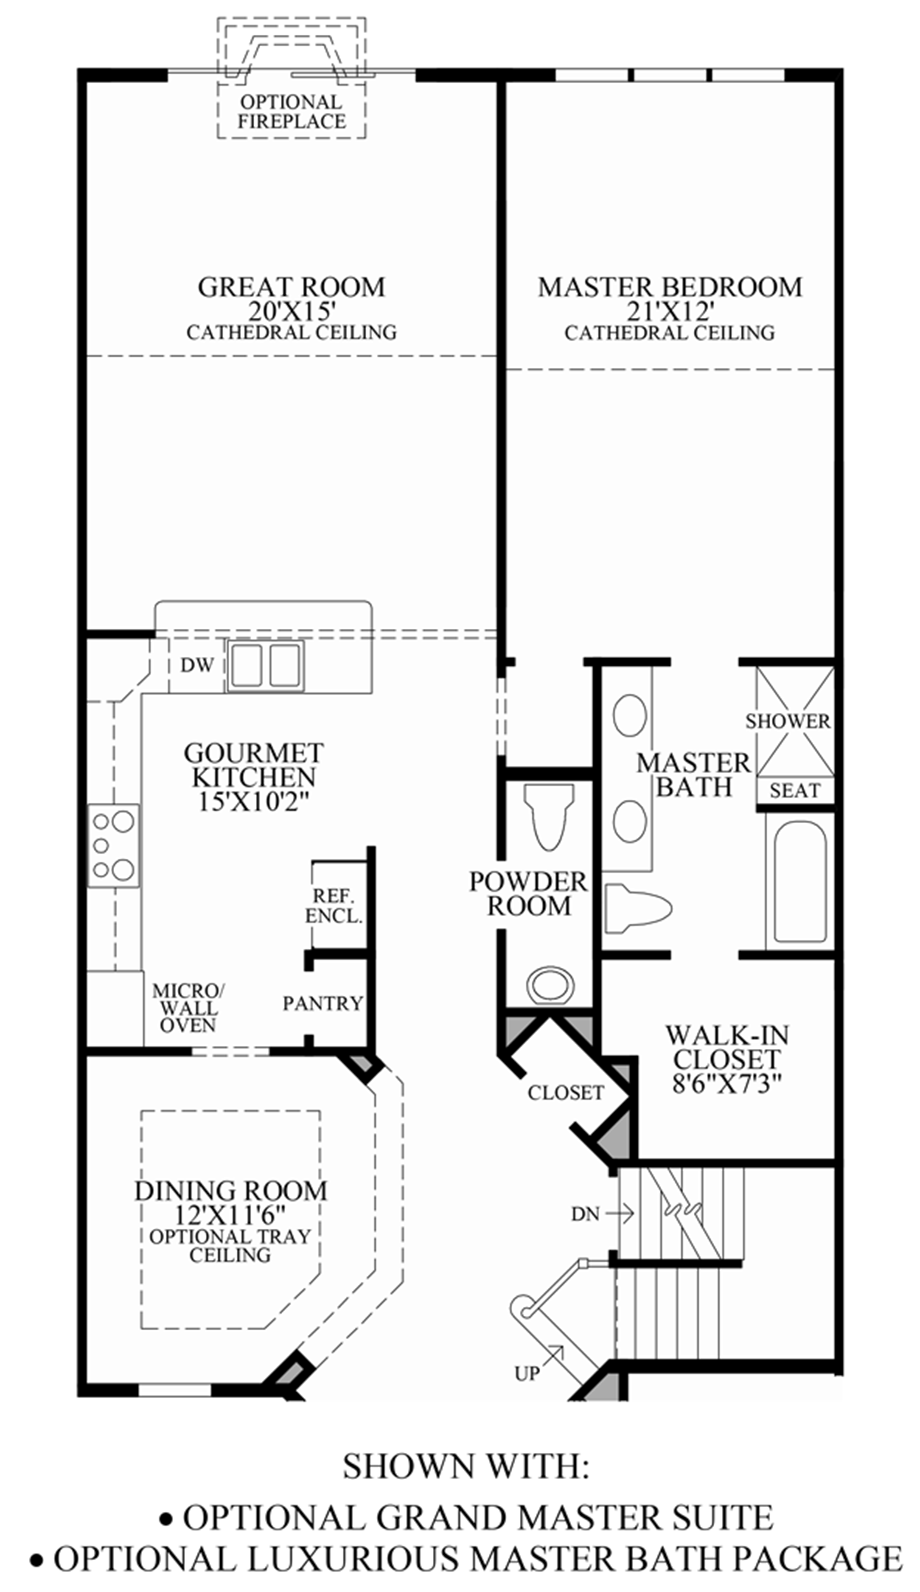 Luxury Master Bedroom Suite Floor Plans ridgeview of novi | the henderson home design